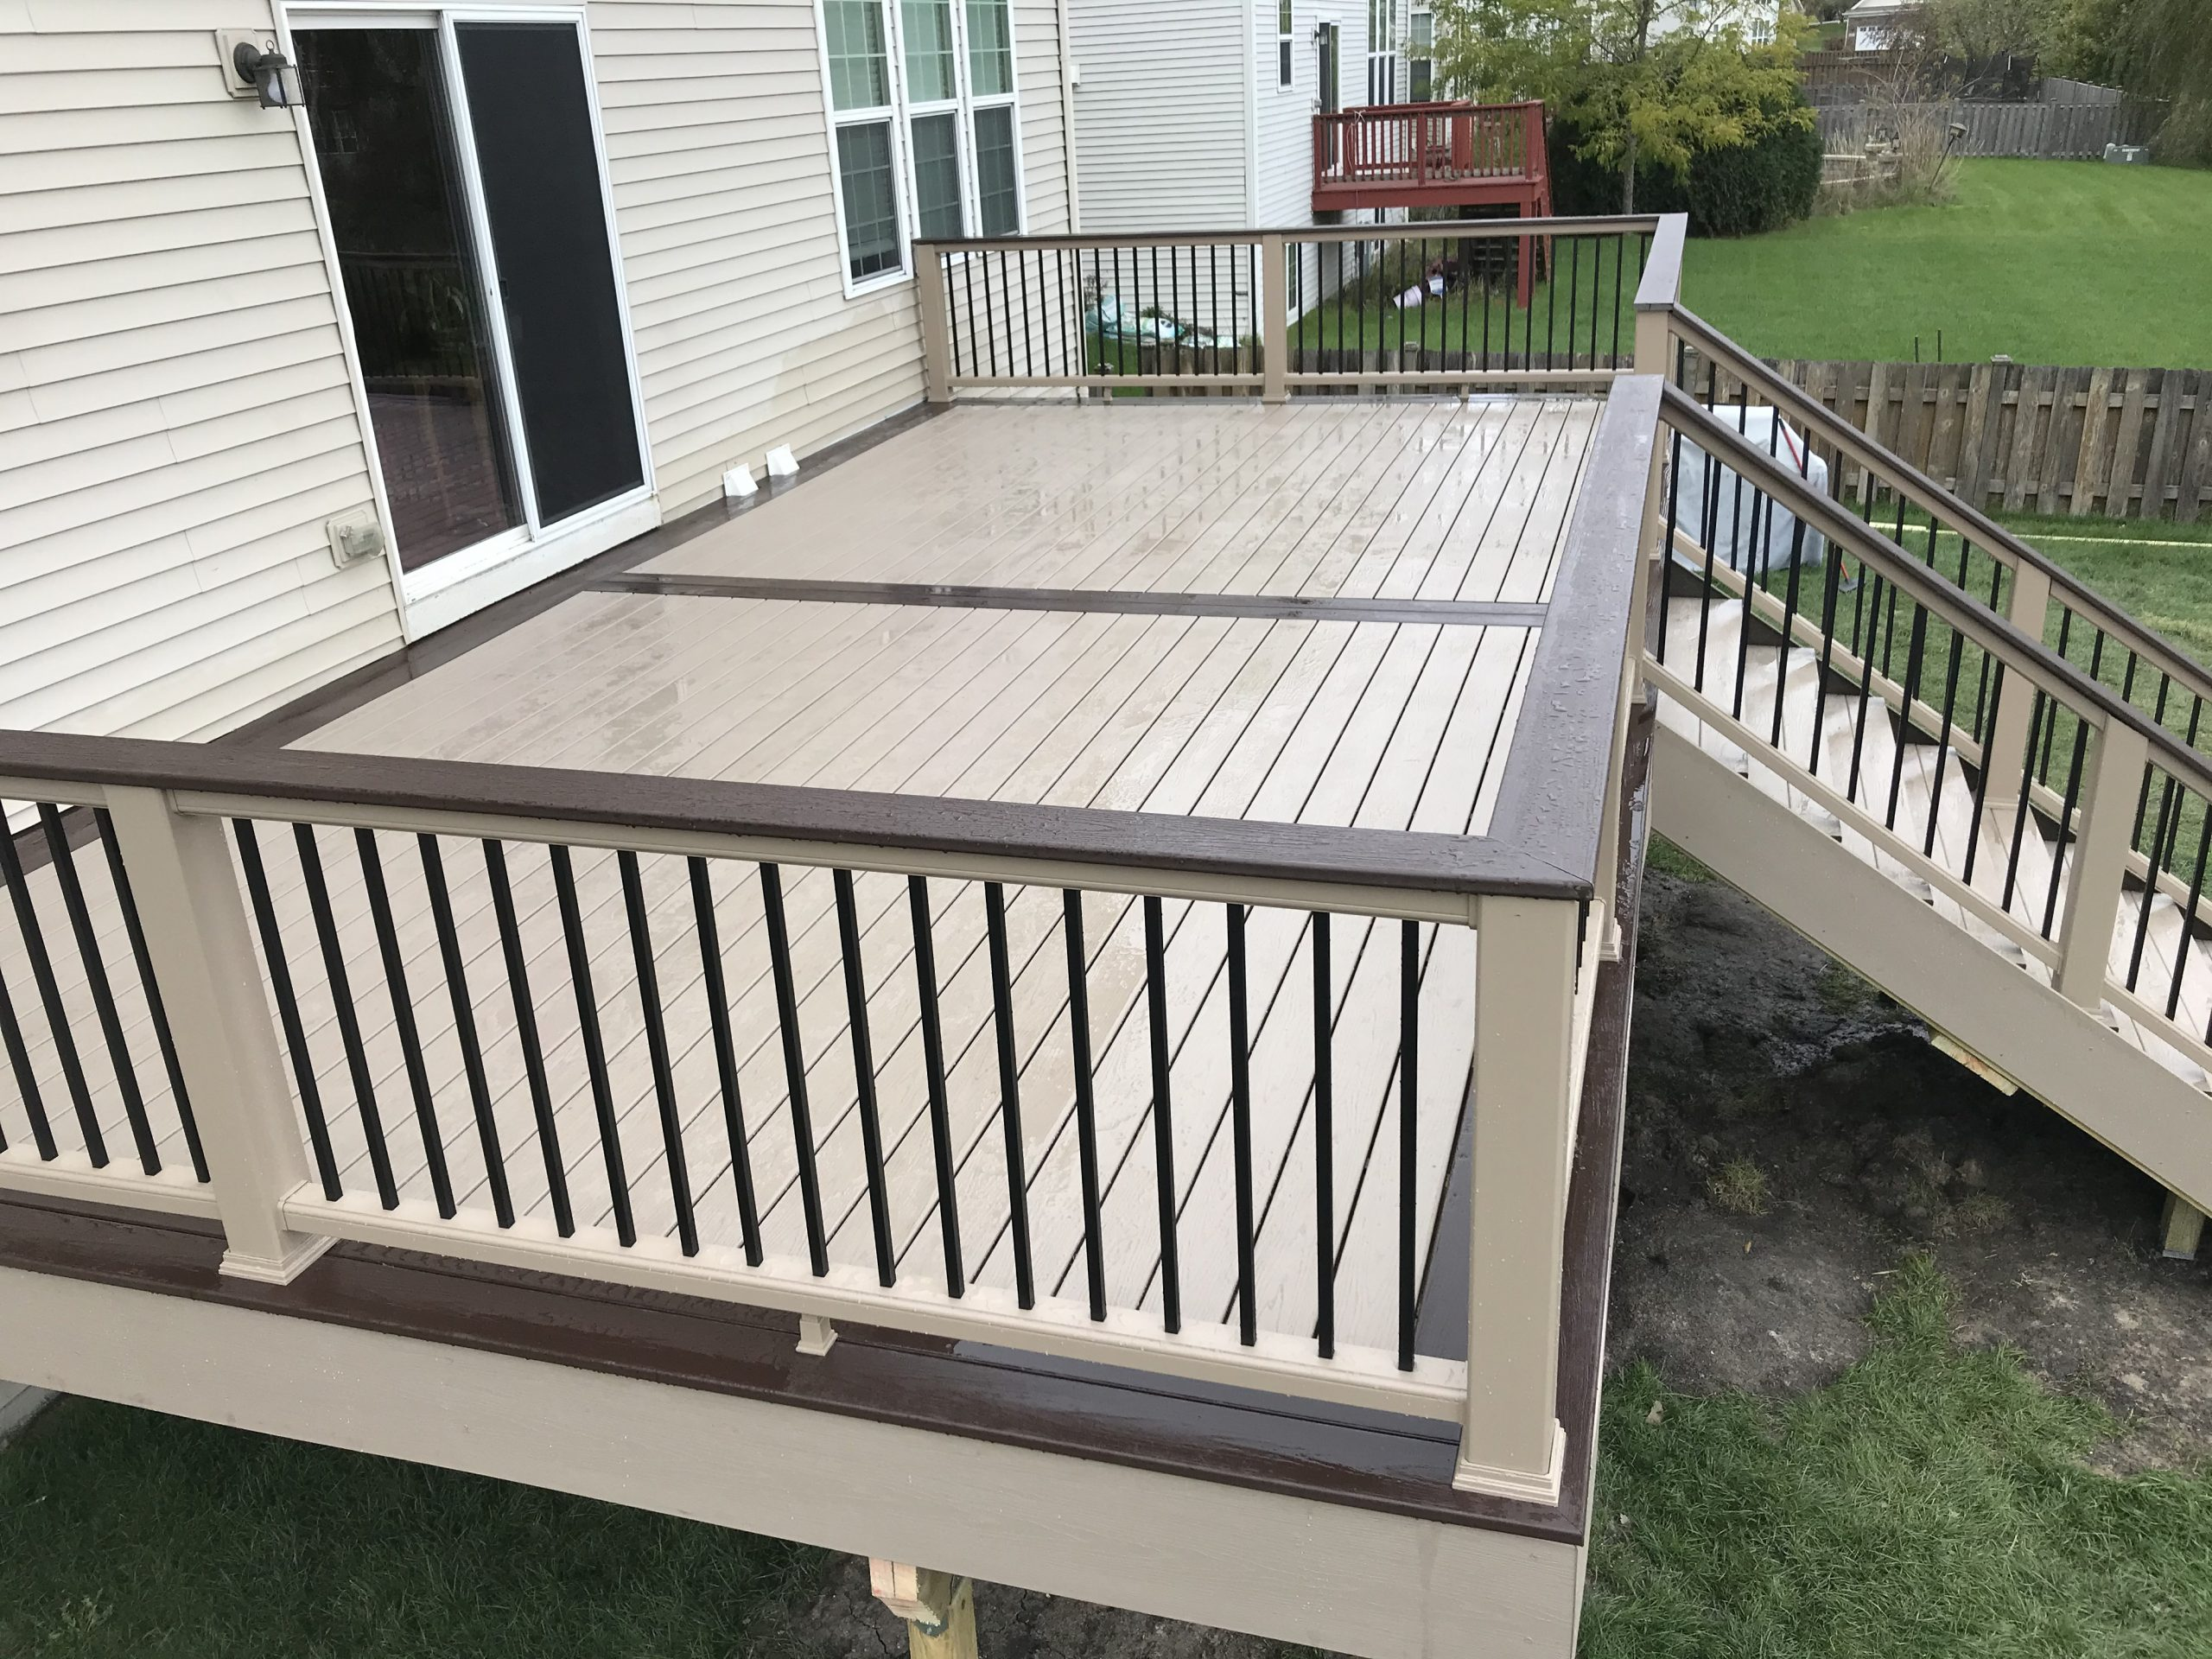 Deck builder near me_ Mundelein